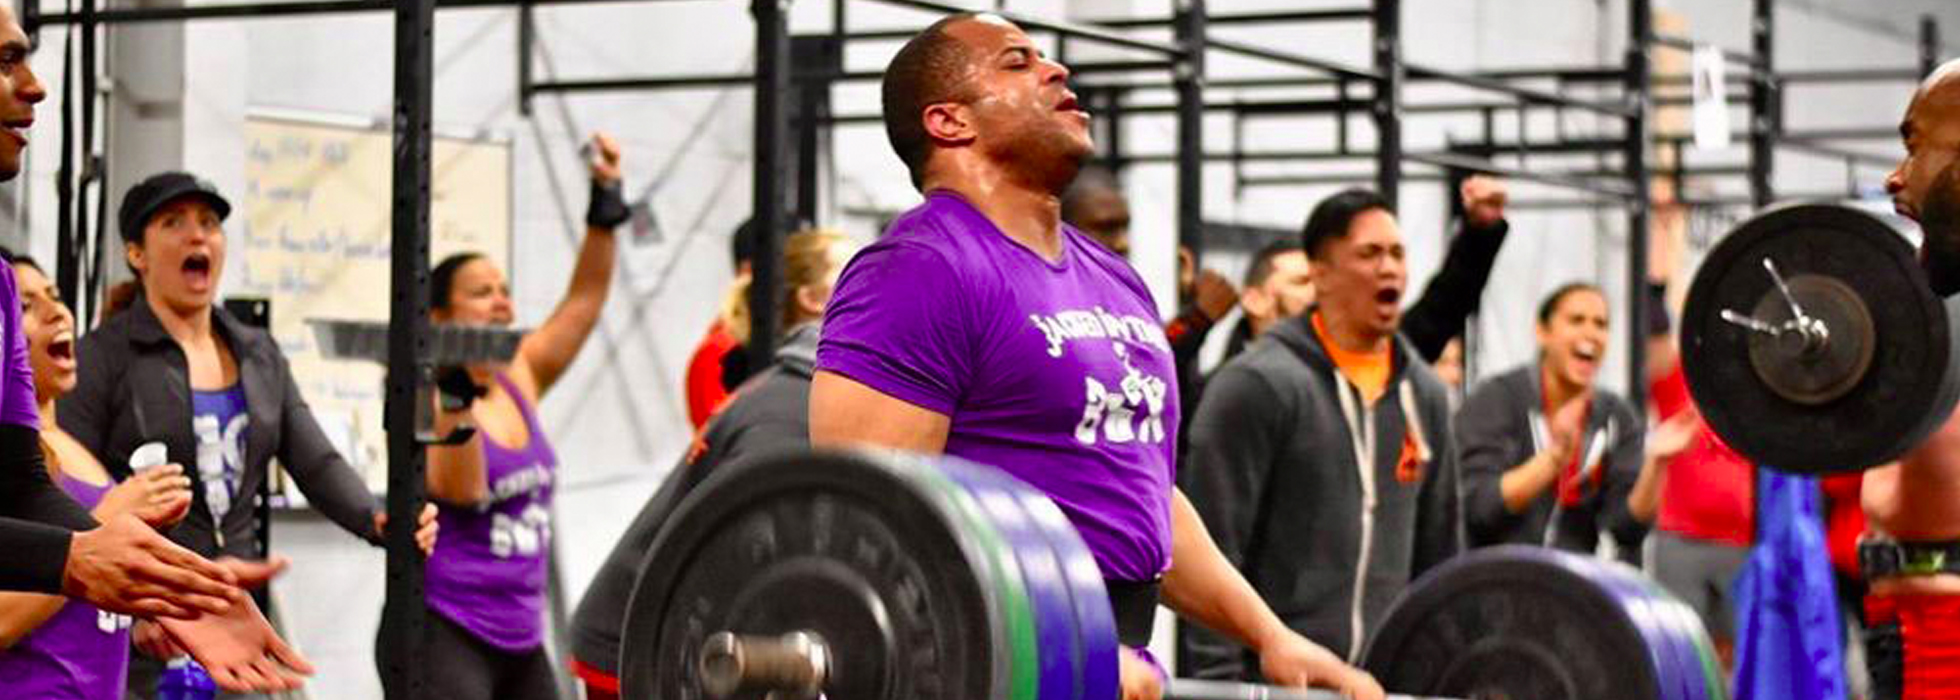 Top 5 Best Gyms To Join Near North Brunswick NJ